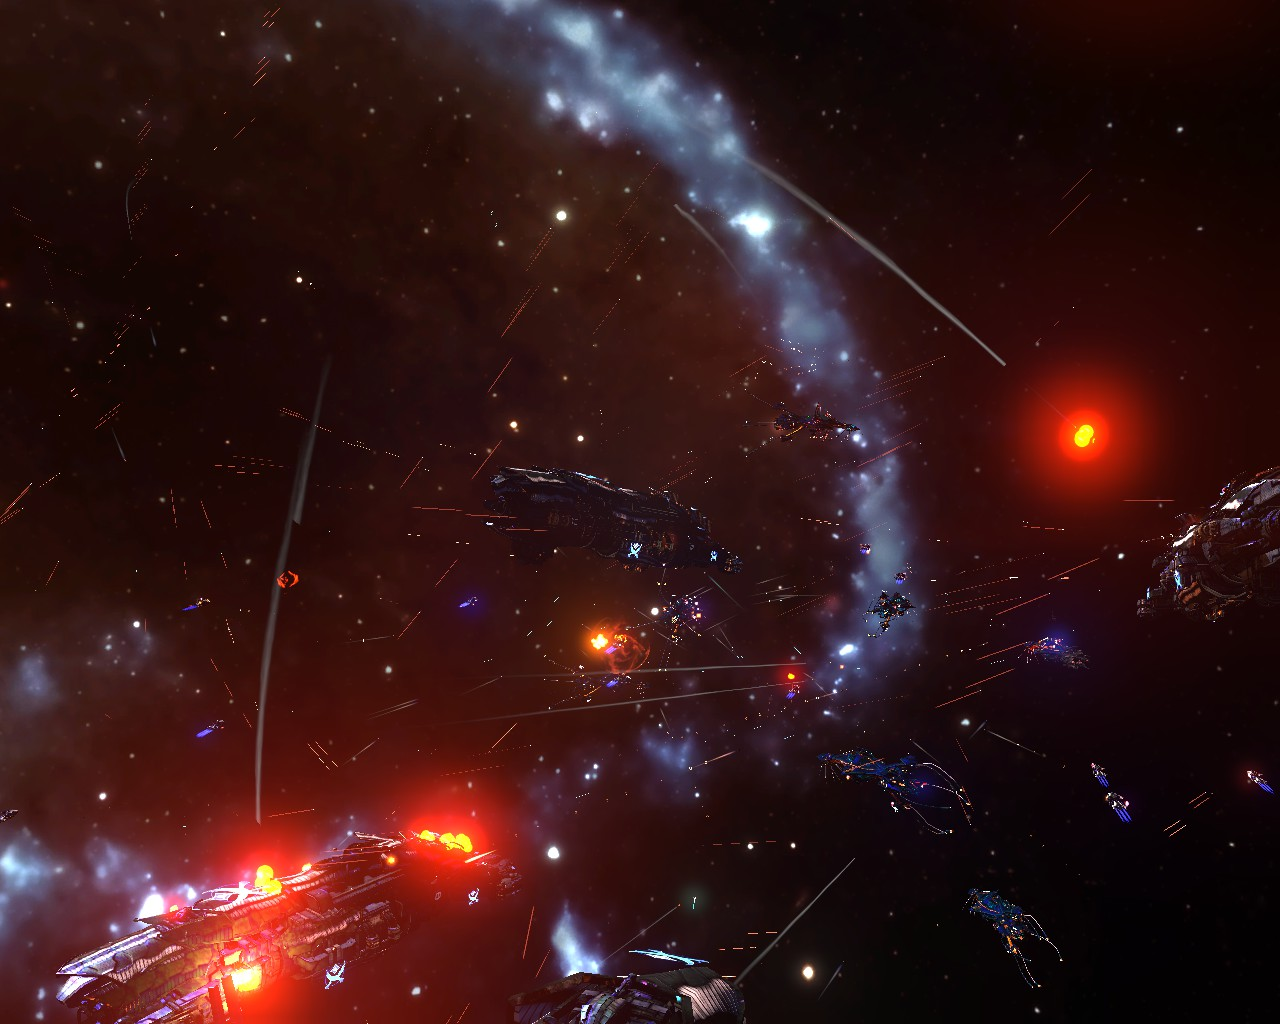 steam community sword of the stars ii enhanced edition rh steamcommunity com Sword of the Stars Research Tree Sword of the Colonies Stars